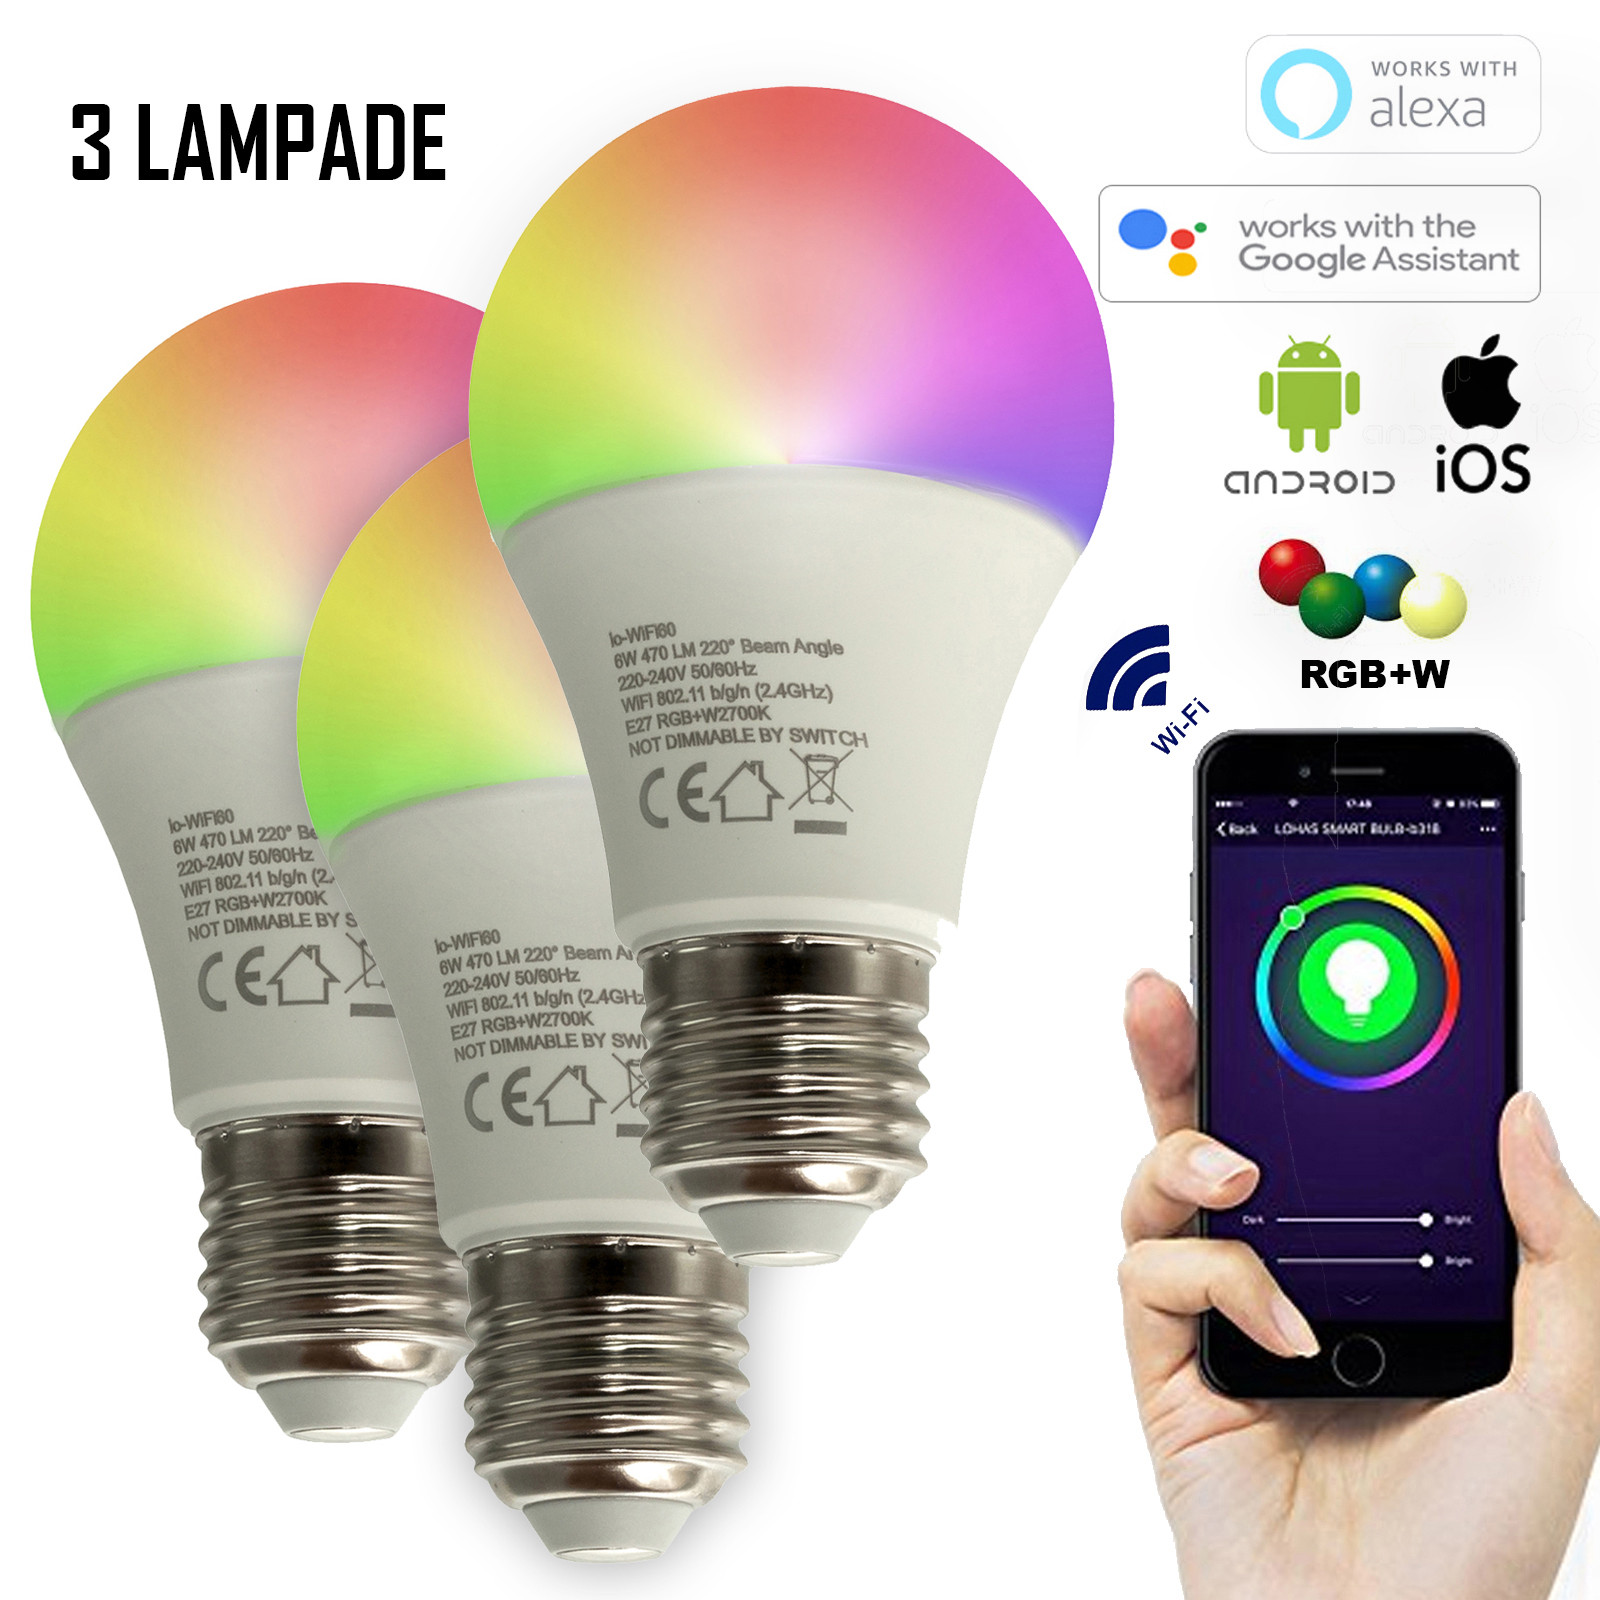 3 PCS light bulbs SMART WiFi BULB LED E27 18W led light RGBW + warm light 2700K NO HUB compatible Alexa IFTTT Google Android smartphone iOS